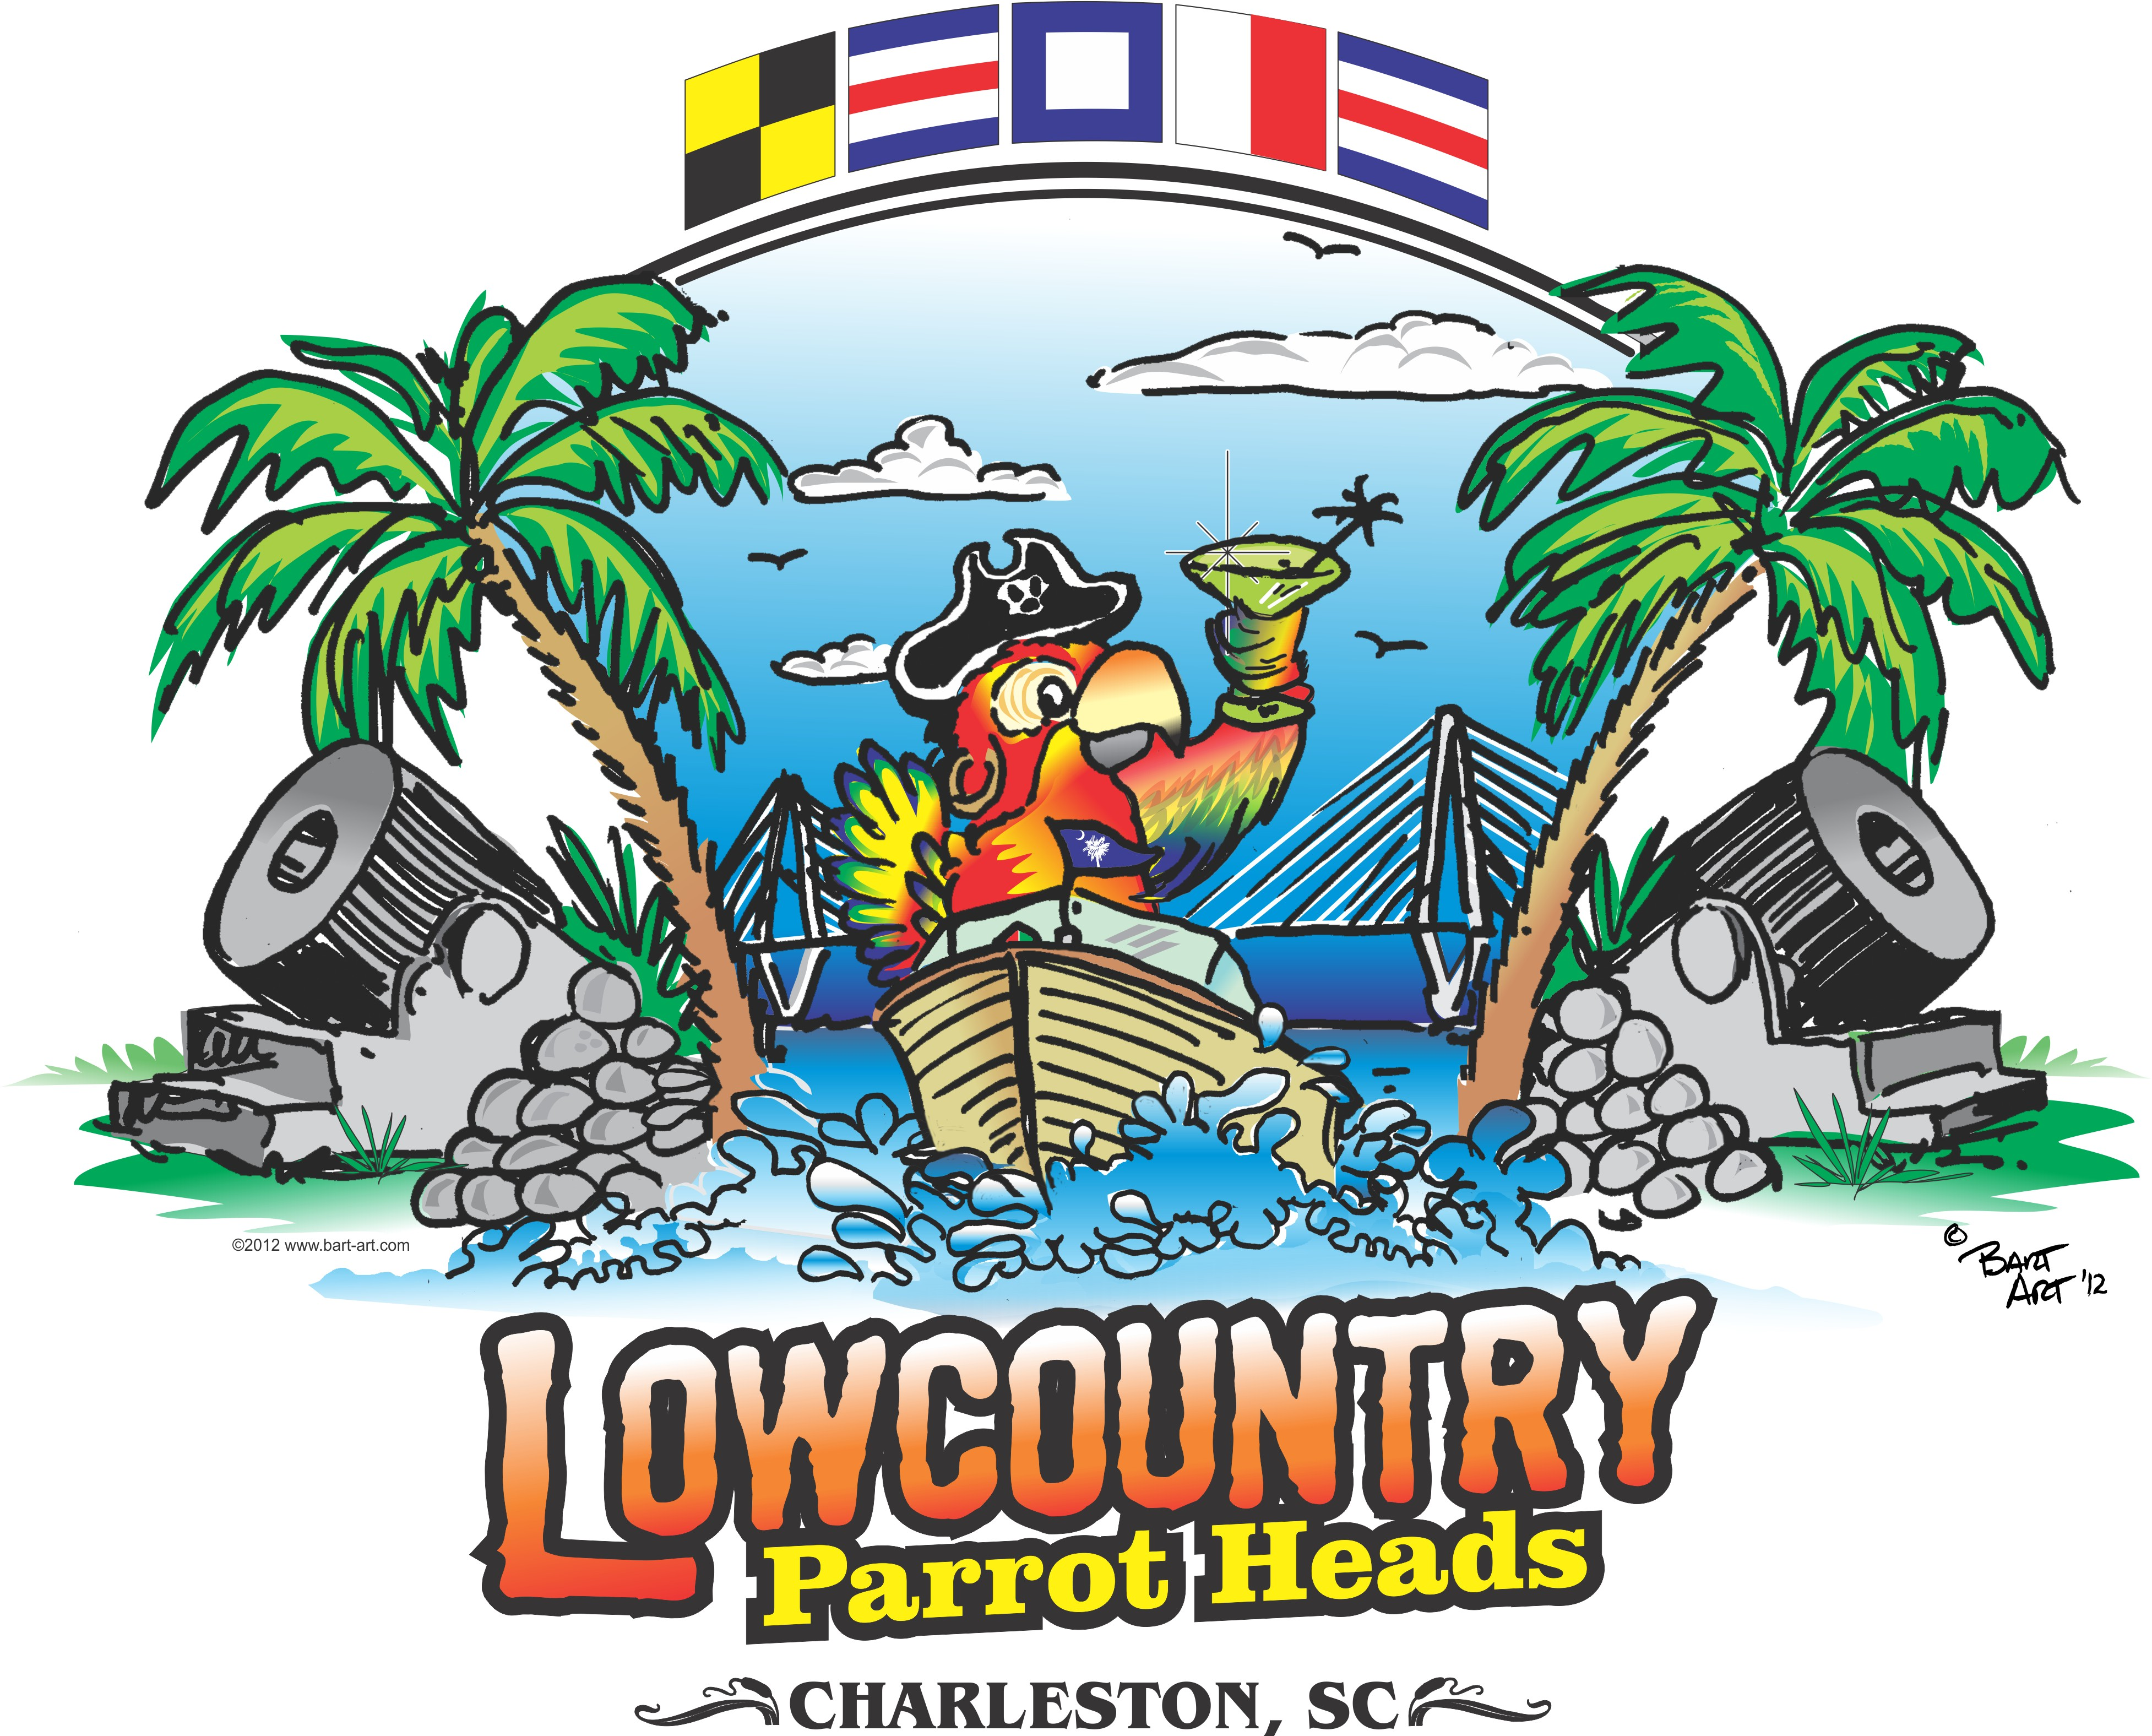 Lowcountry Parrotheads (Official)